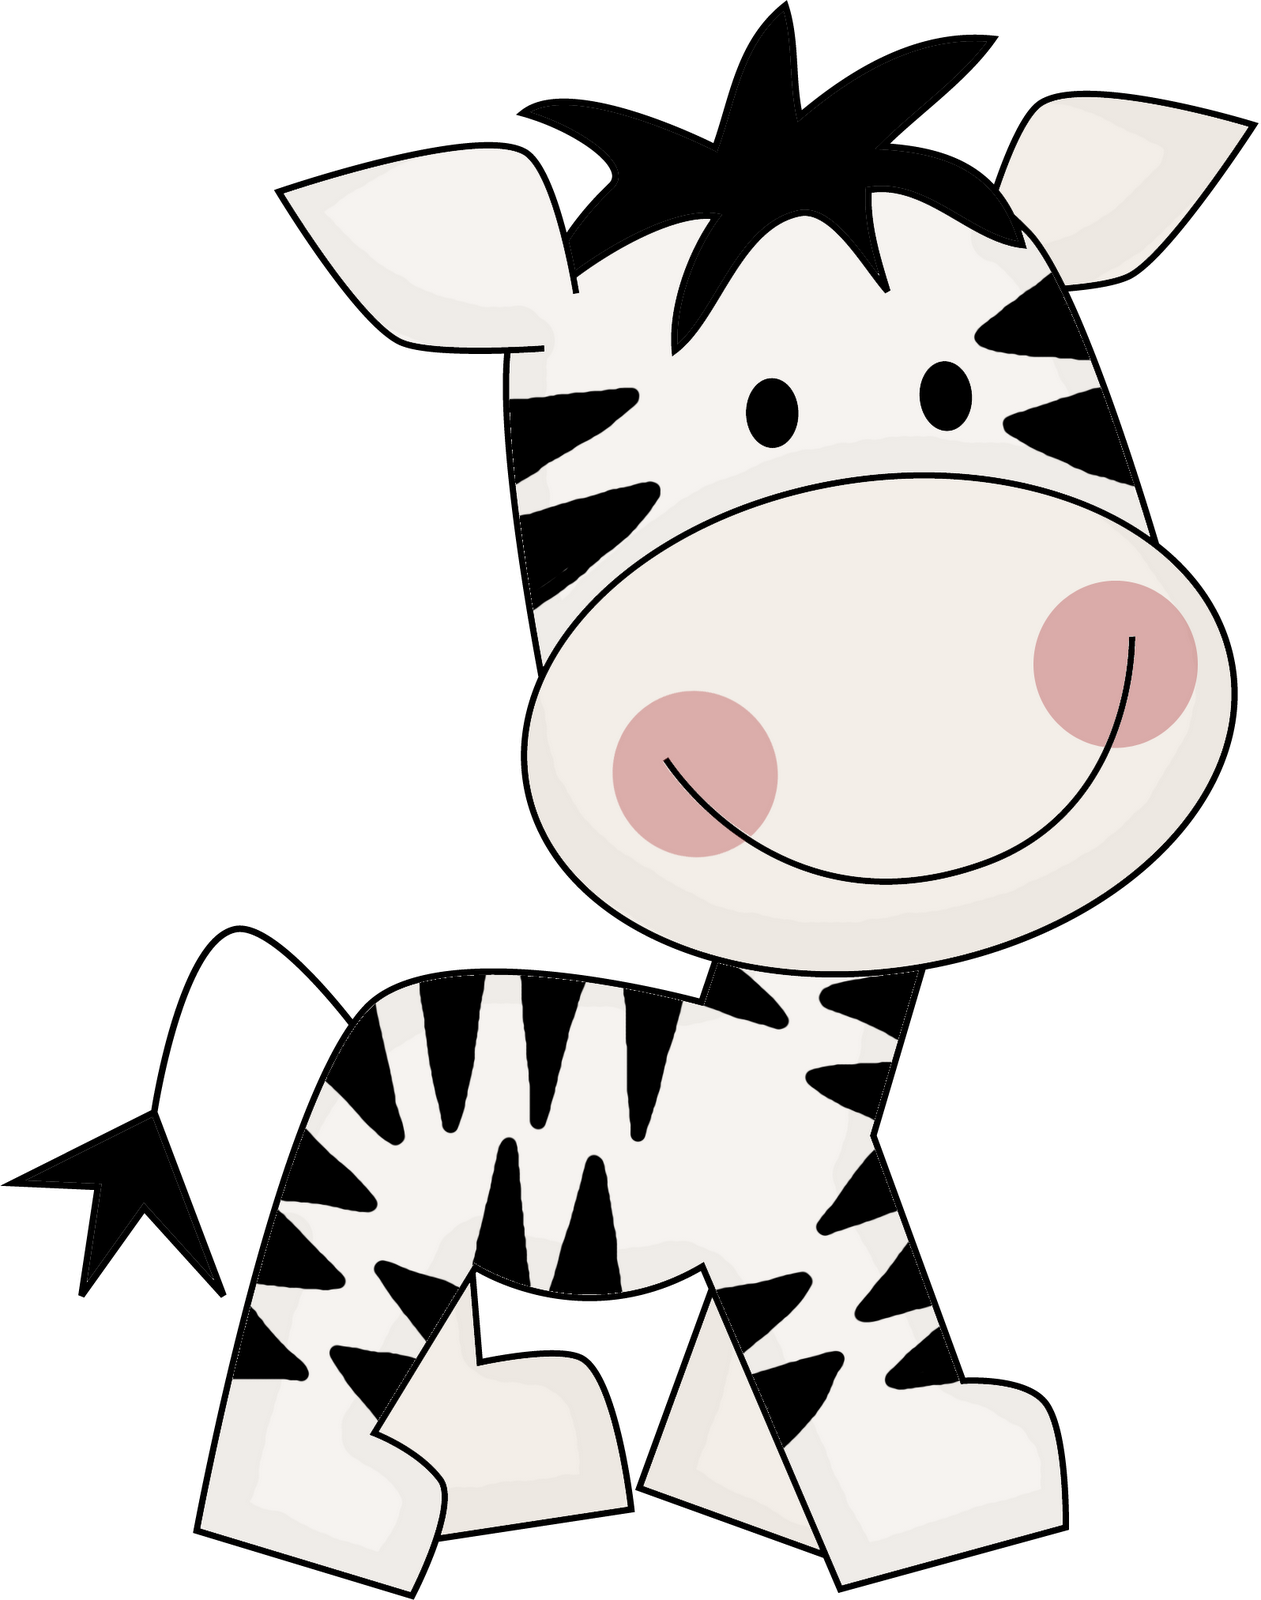 clipart royalty free library Baby zebra clipart. Cute illustration google search